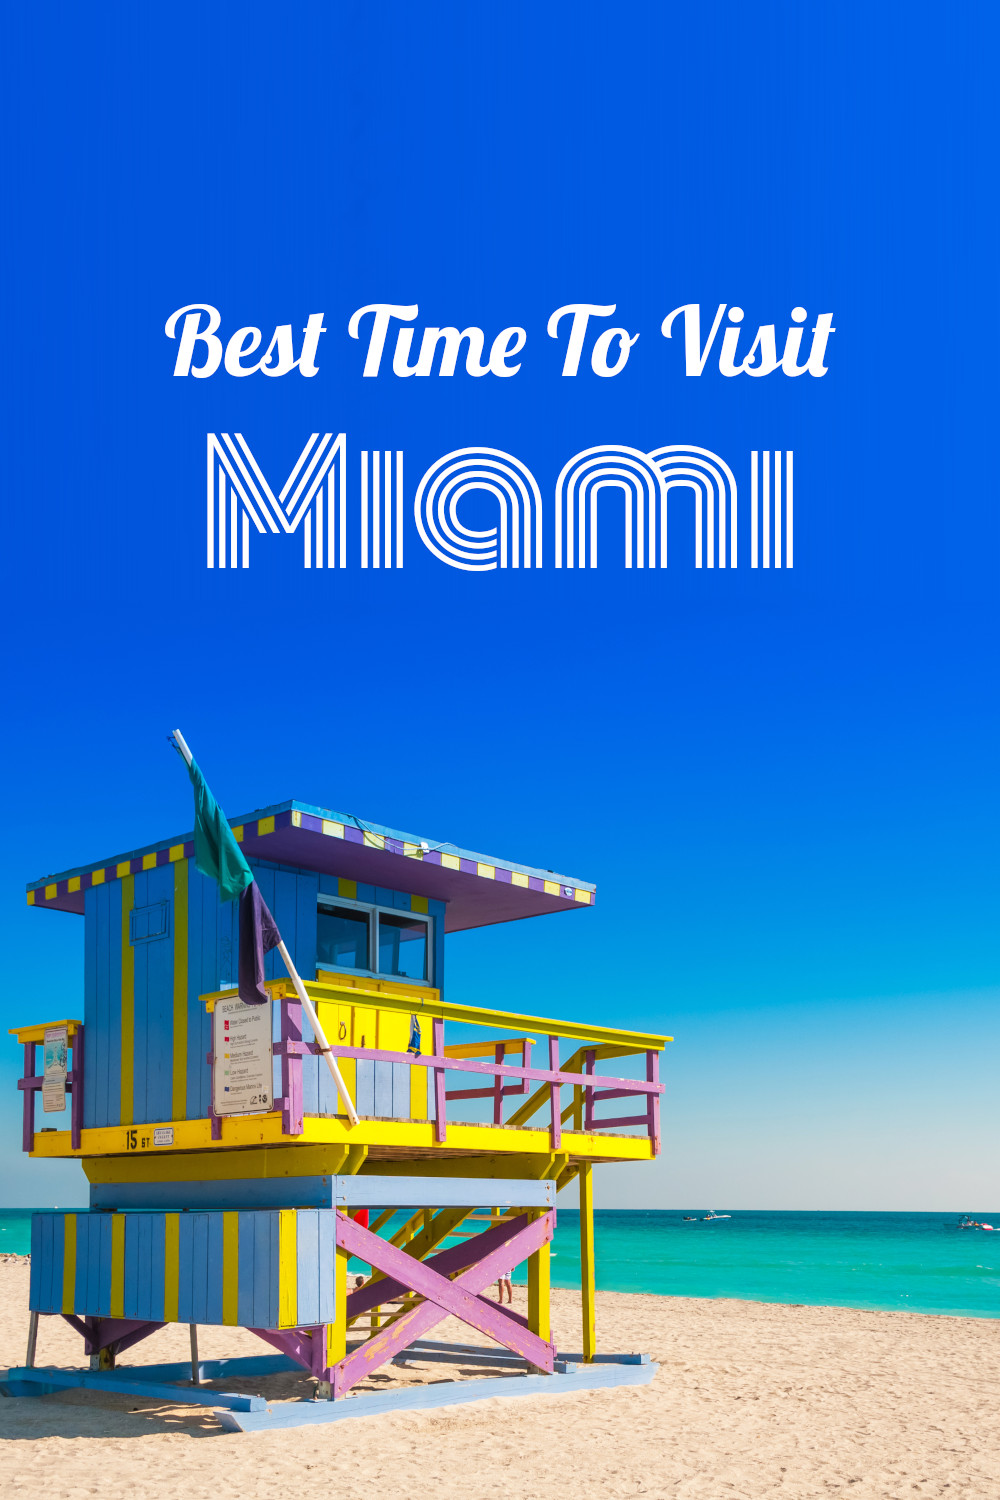 Best time to visit Miami - a complete guide for when you should go to Miami for the weather, events, hitting the beach or anything else.